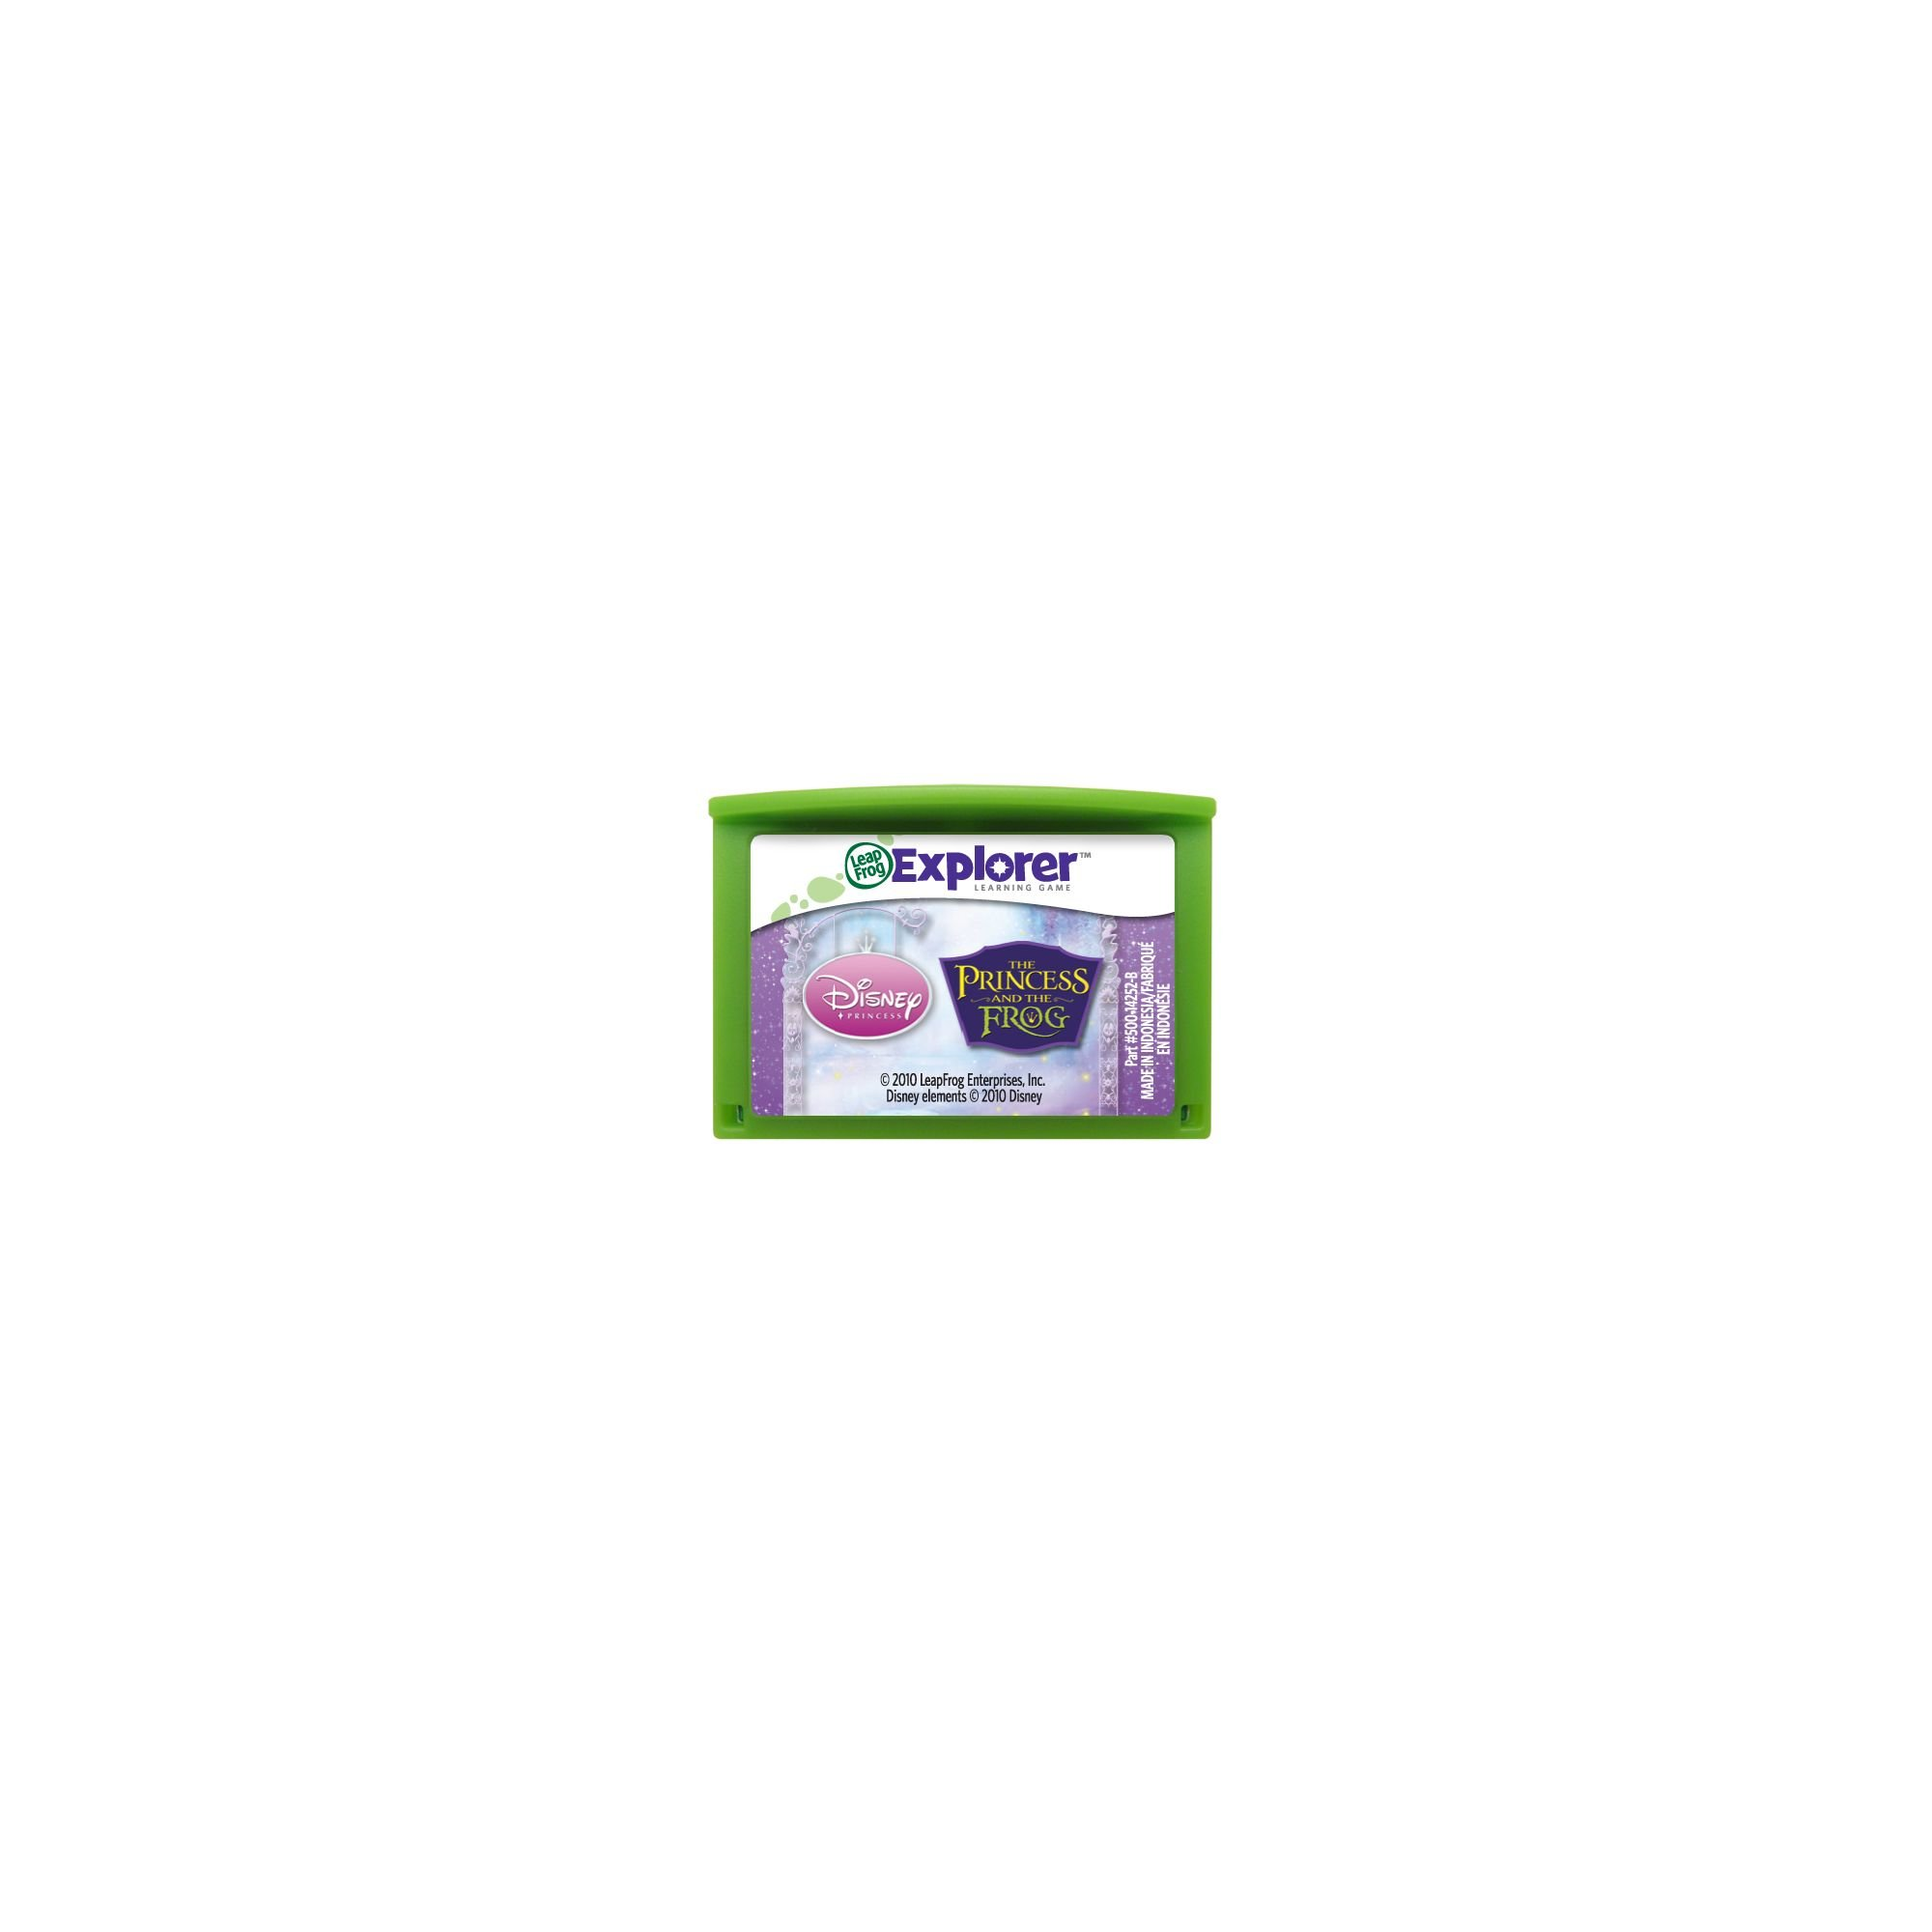 LeapFrog Explorer Disney The Princess and The Frog Learning Game by LeapFrog (Image #3)